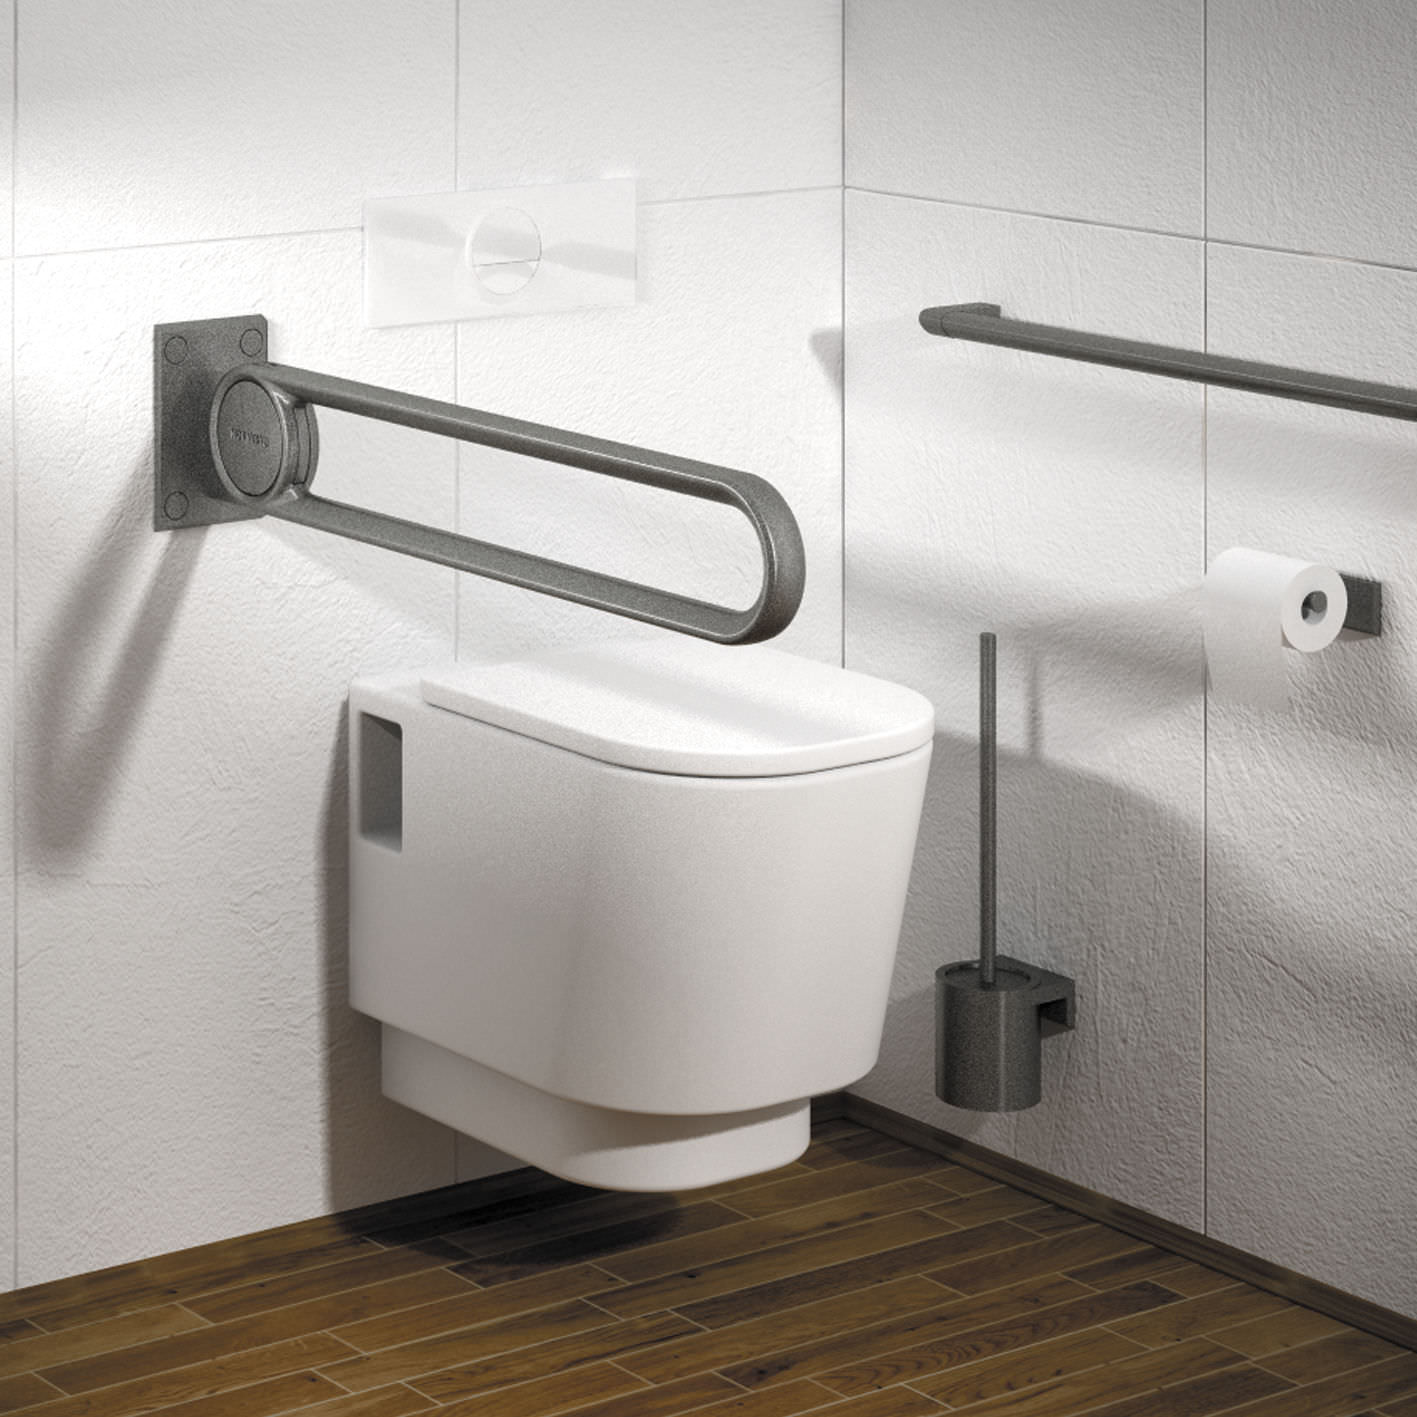 Metal grab bar / U-shaped / wall-mounted / commercial - 7447060 ...